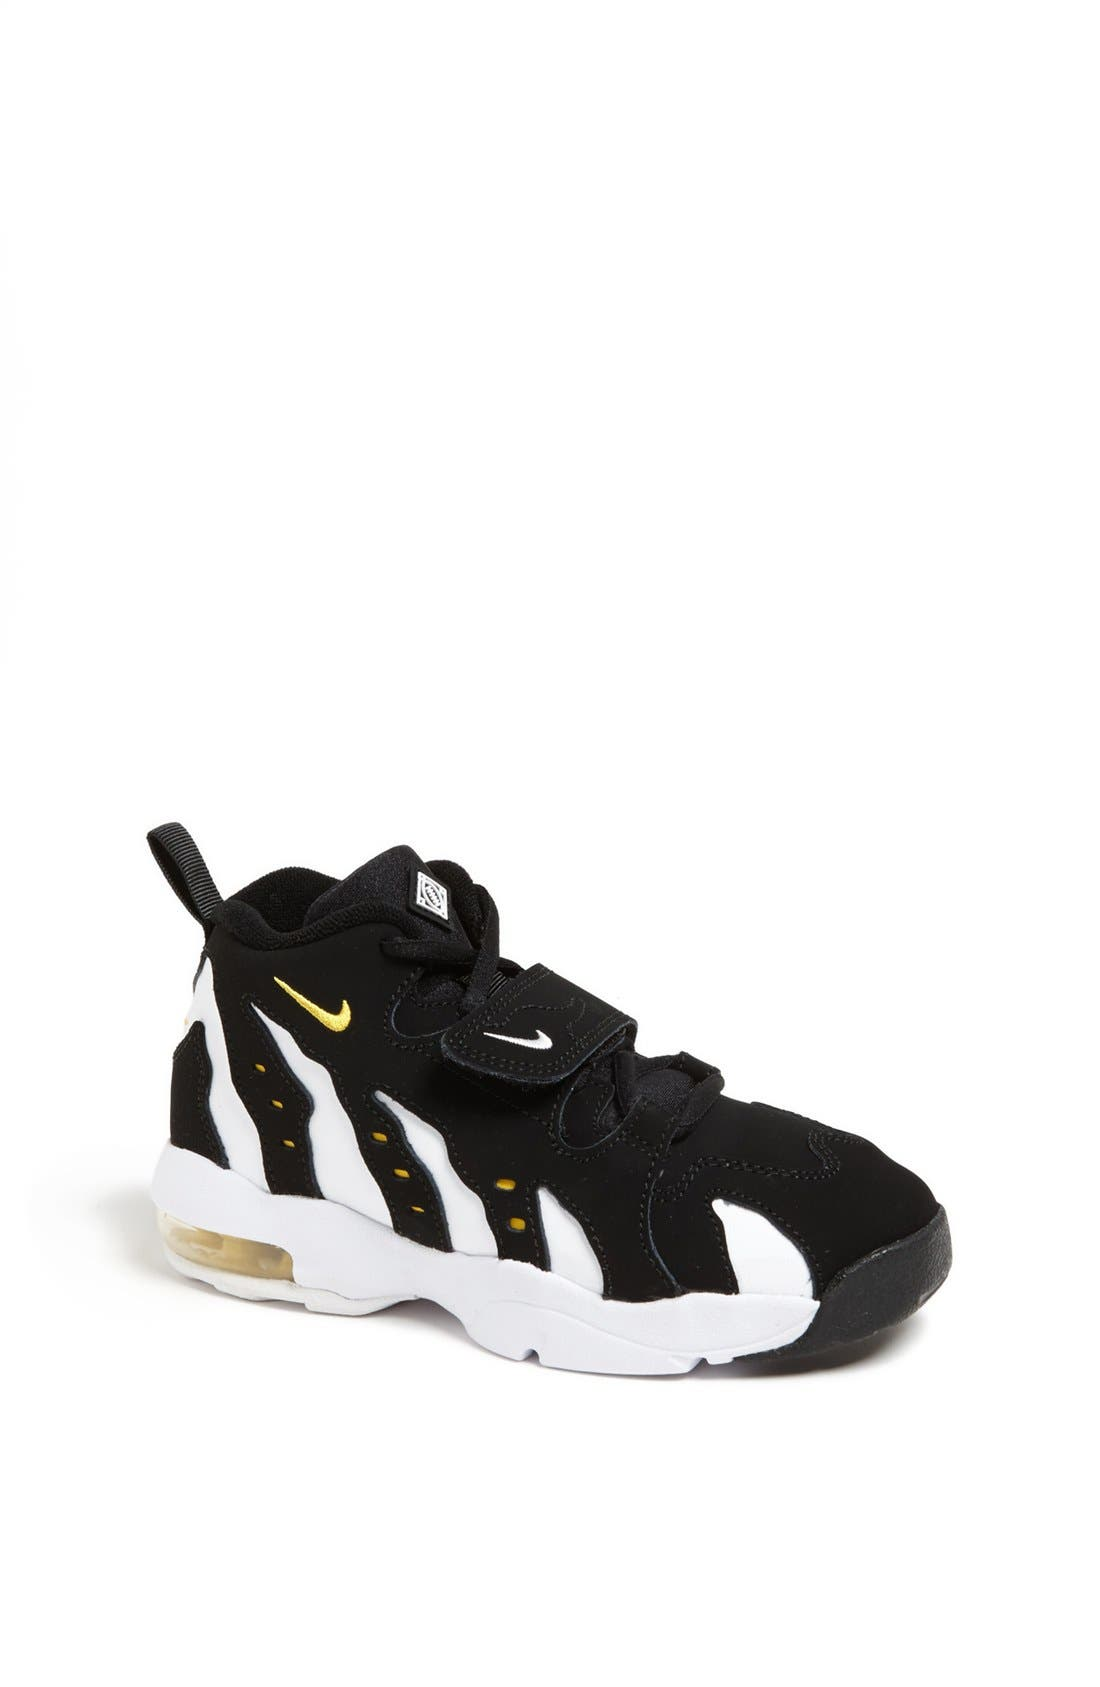 Main Image - Nike 'Air DT Max '96' Sneaker (Toddler & Little Kid)